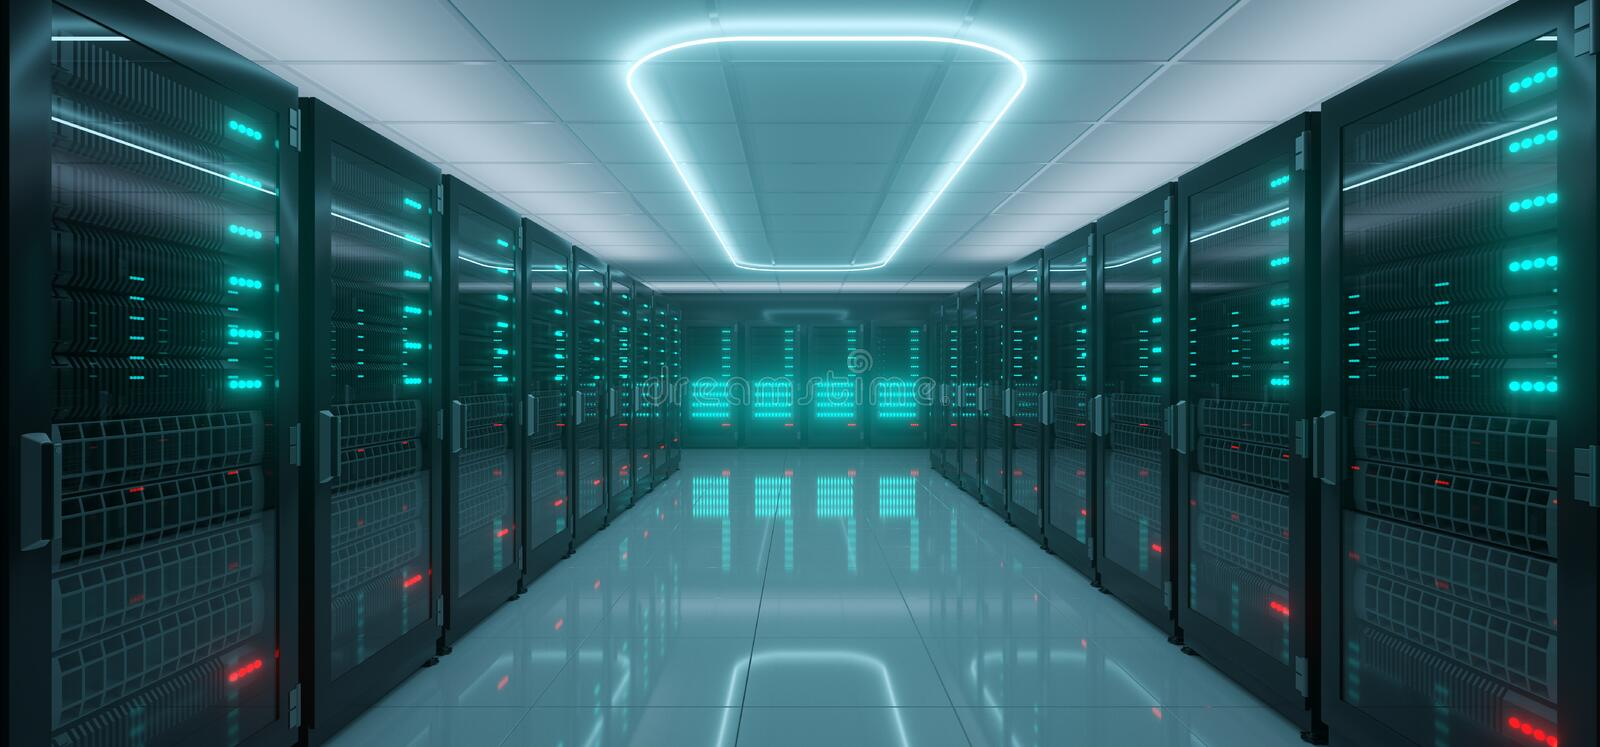 Modern Hi-Tech IT Server Rack Room With A lot Servers With Glowing Lights On Reflective Floor And Neon Light On The Ceiling stock illustration